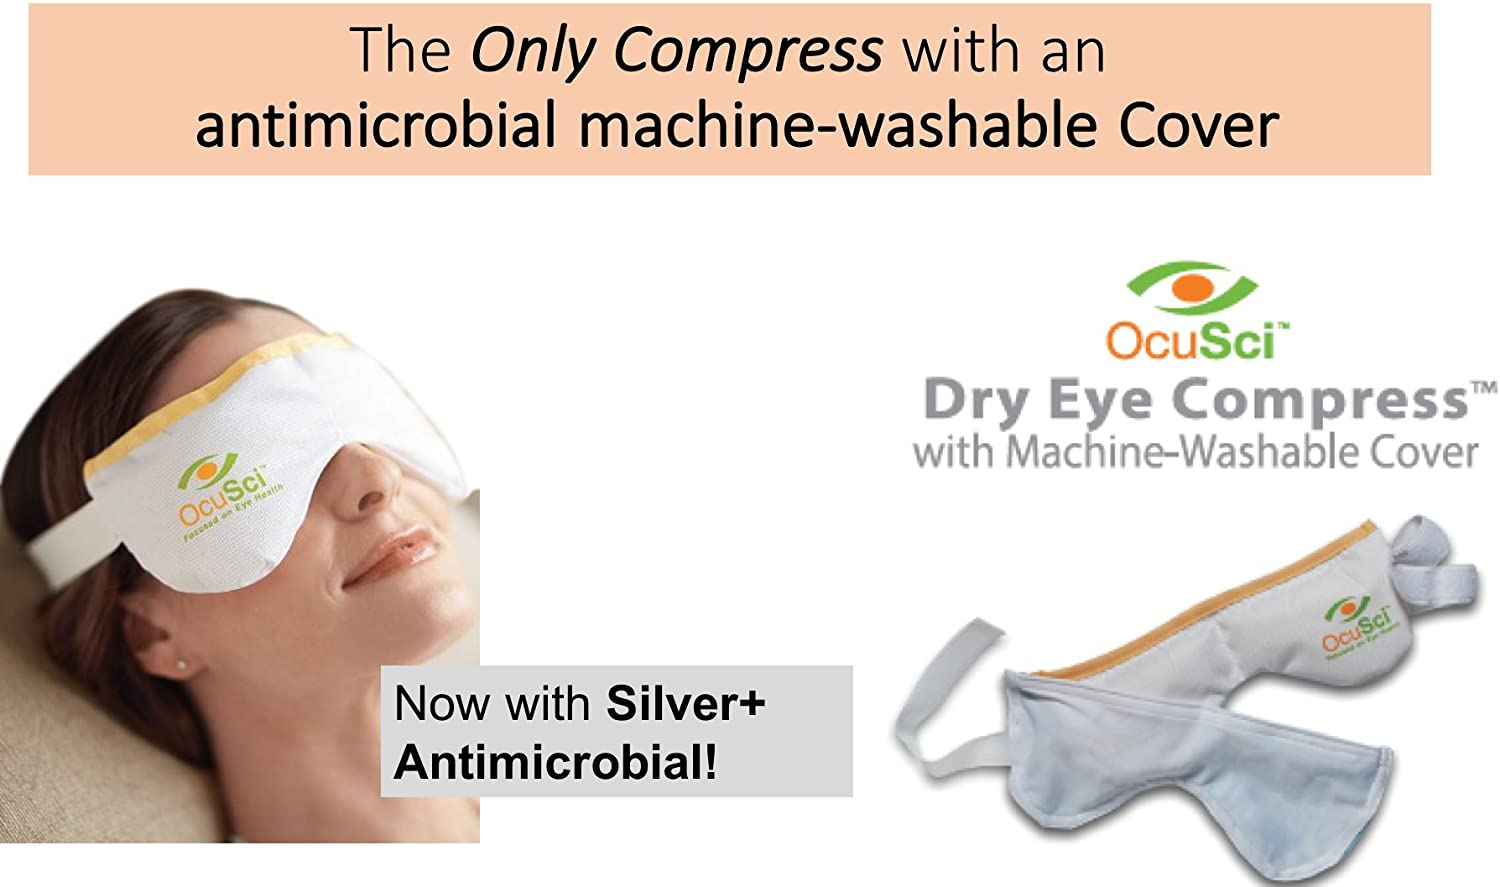 Dry Eye Compress With HydroHeat Machine Washable Cover, Save 40%, Microwave for Moist Heat Therapy or Freeze for Cold Therapy to Treat: Dry Eye Syndrome, TMJ, Sinus Pressure, Stress.